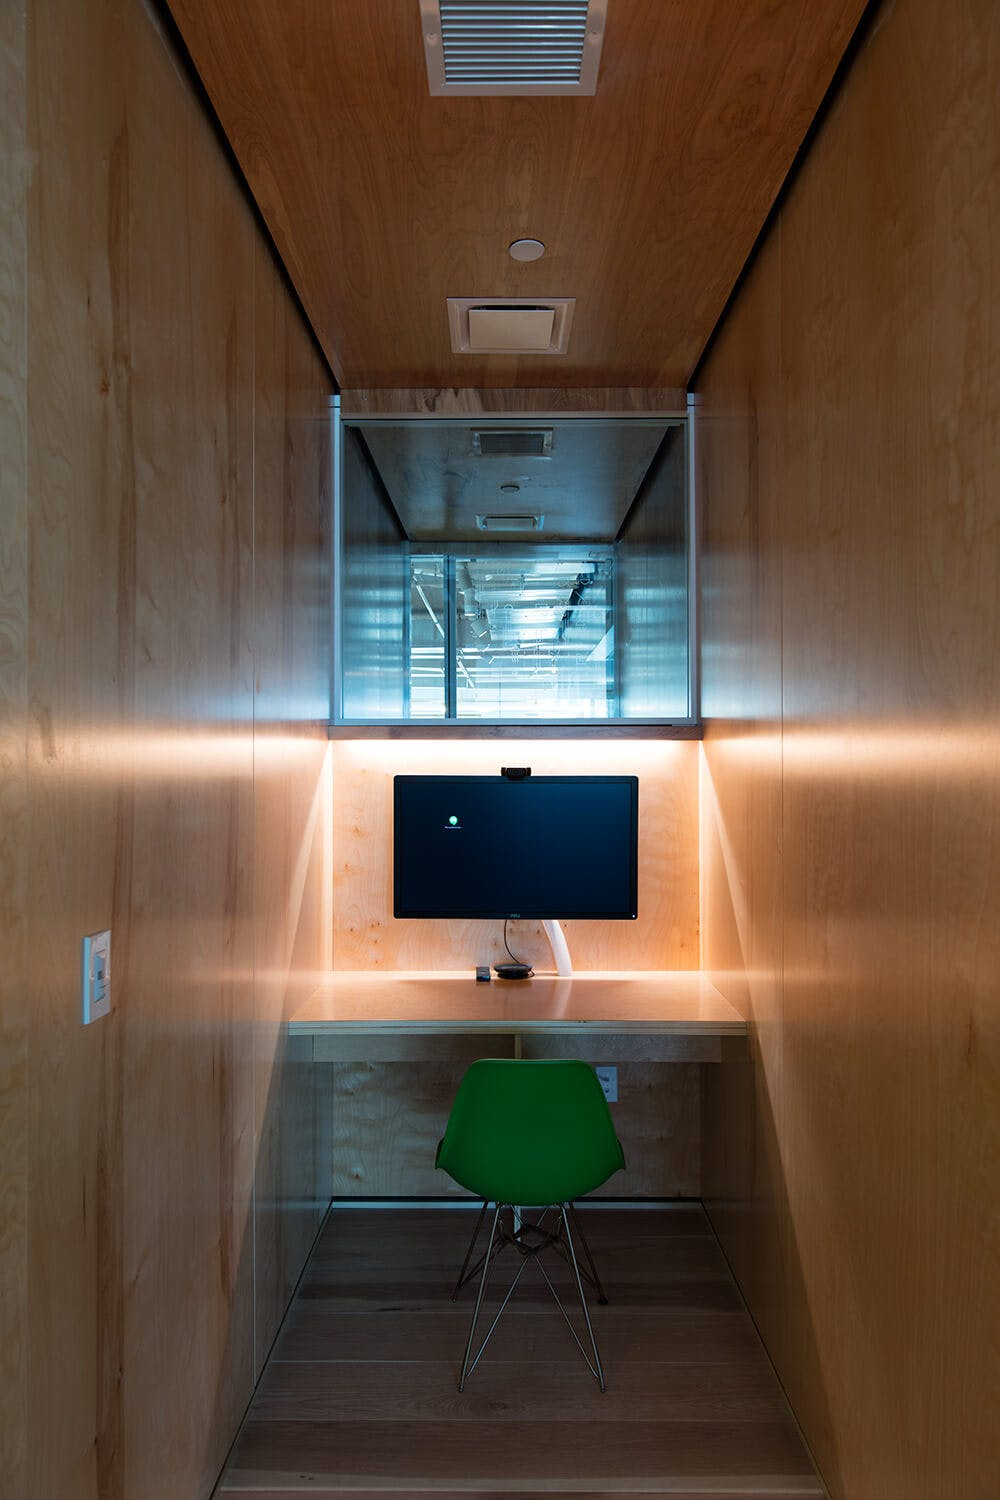 Phone booth for remote meetings